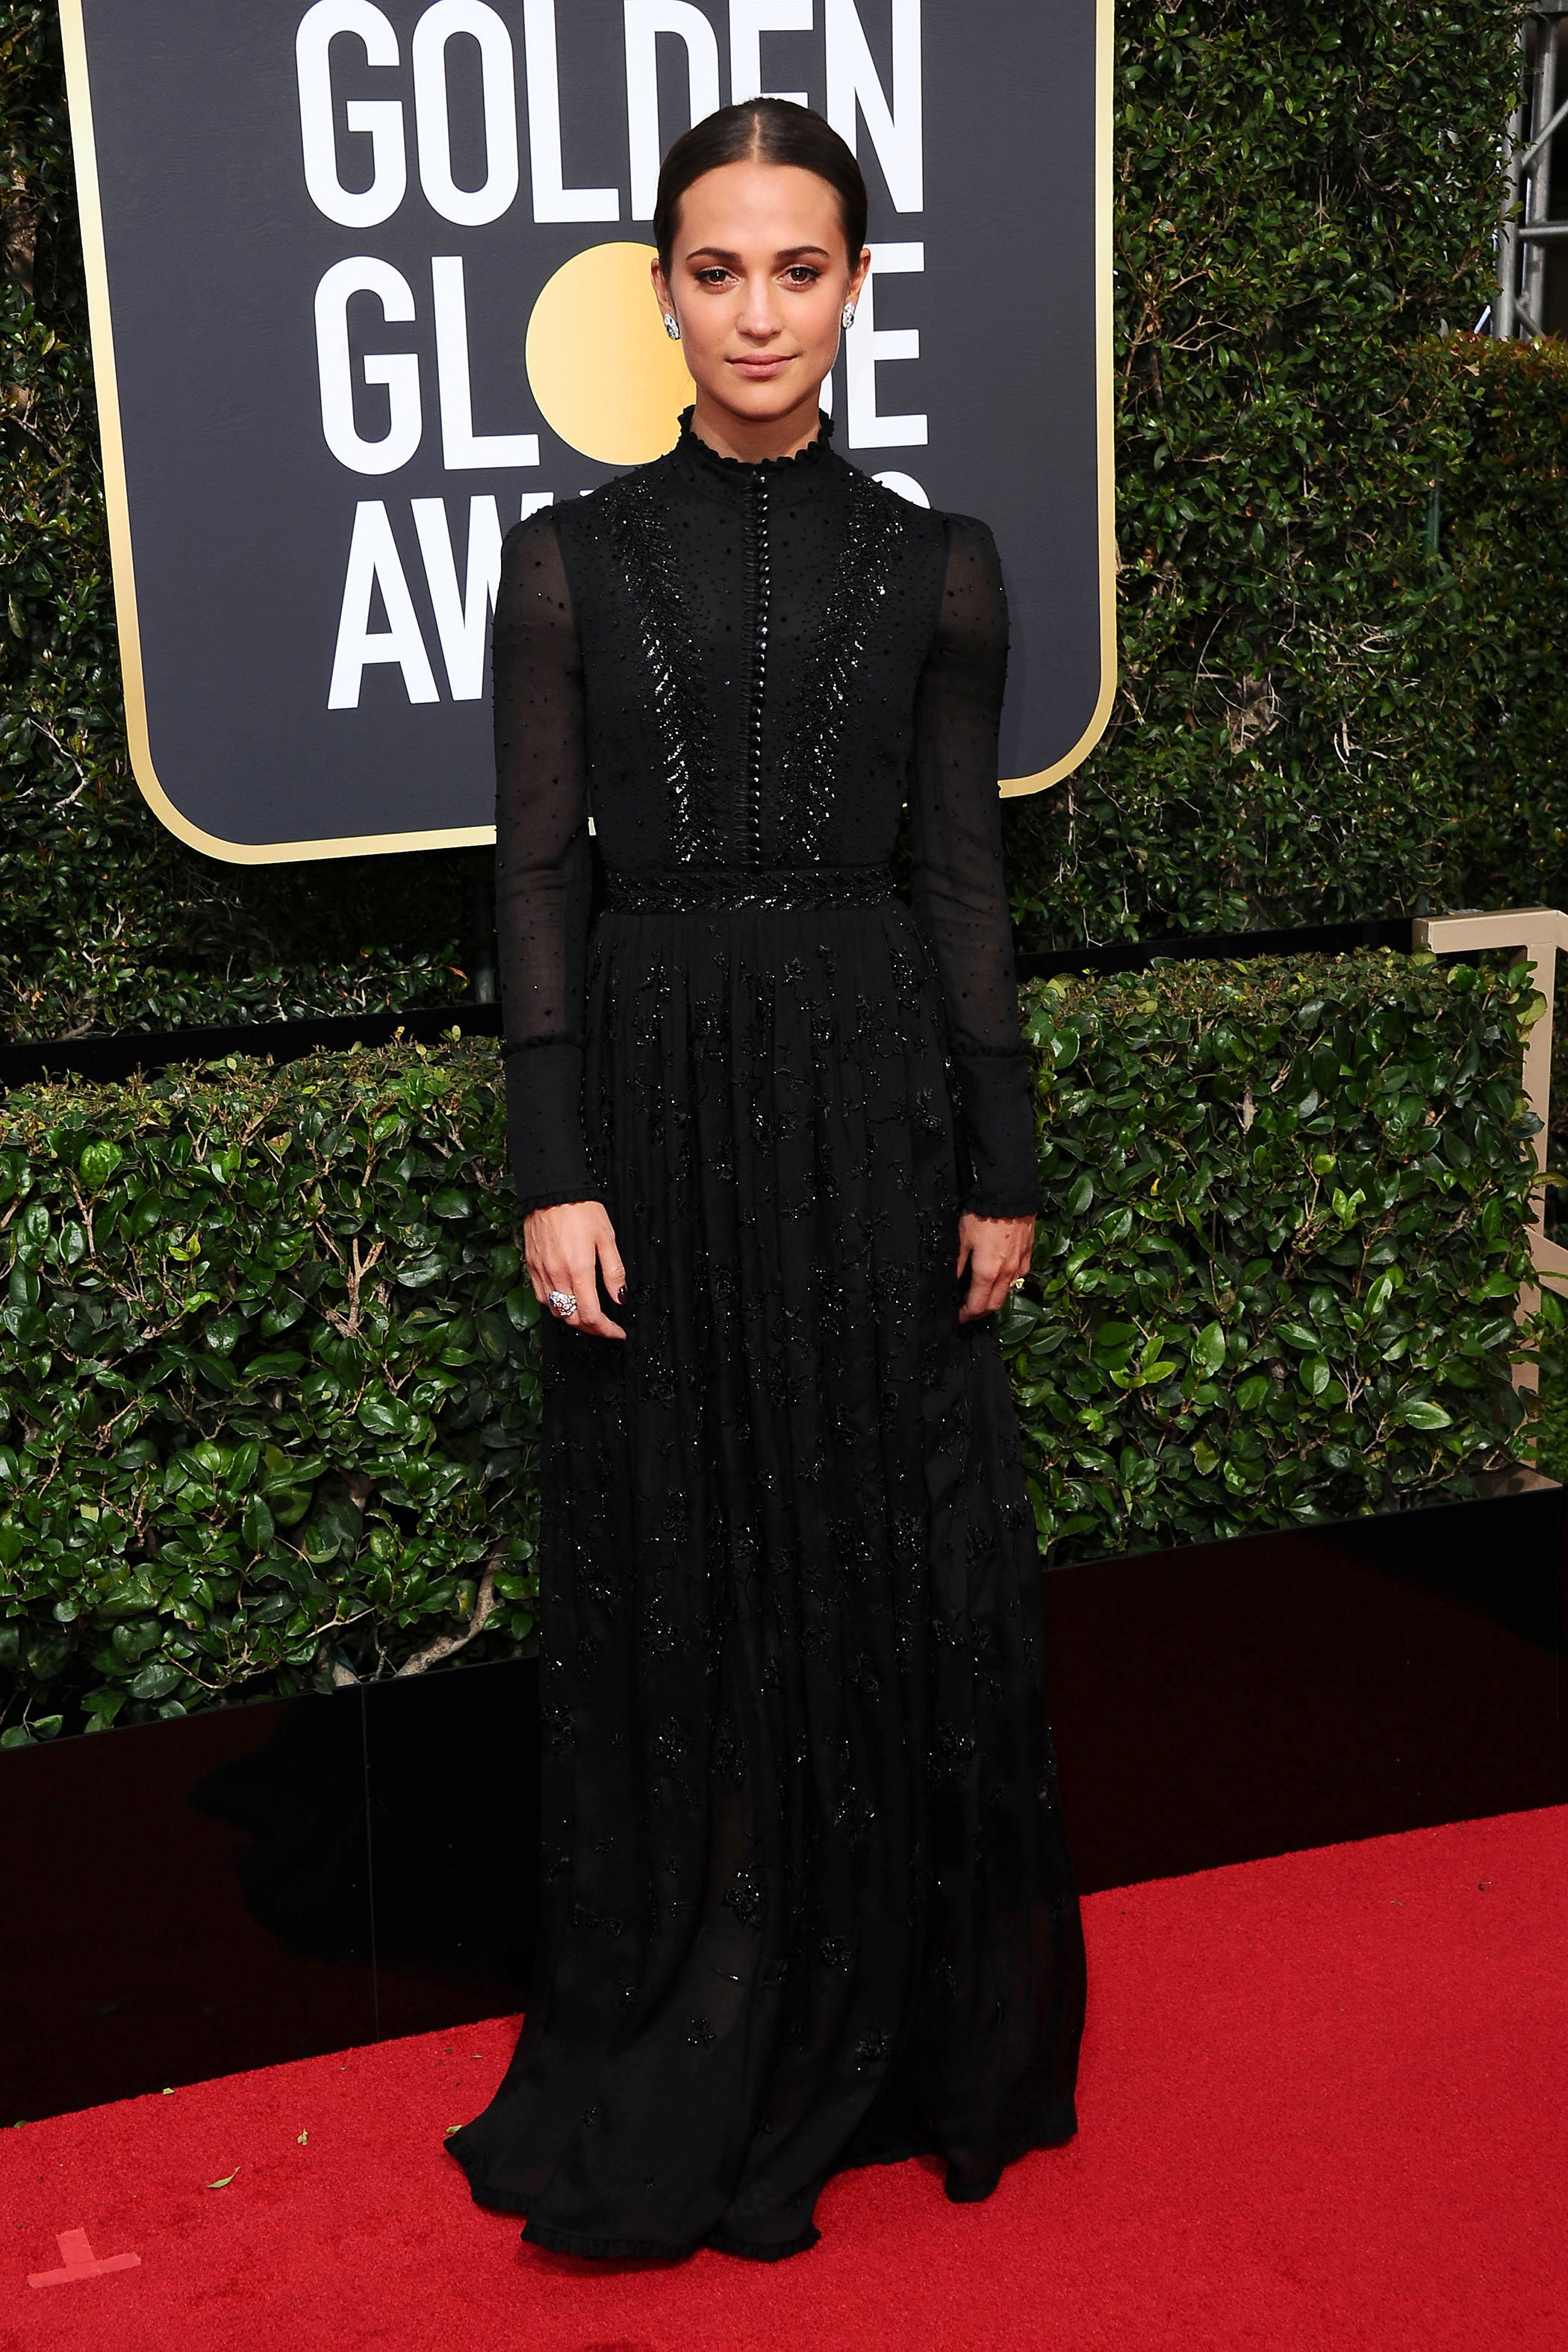 , Beverly Hills, CA -20180107 - The 75th Golden Globe Awards - Arrivals at The Beverly Hilton  -PICTURED: Alicia Vikander -, Image: 359493988, License: Rights-managed, Restrictions: , Model Release: no, Credit line: Profimedia, INSTAR Images